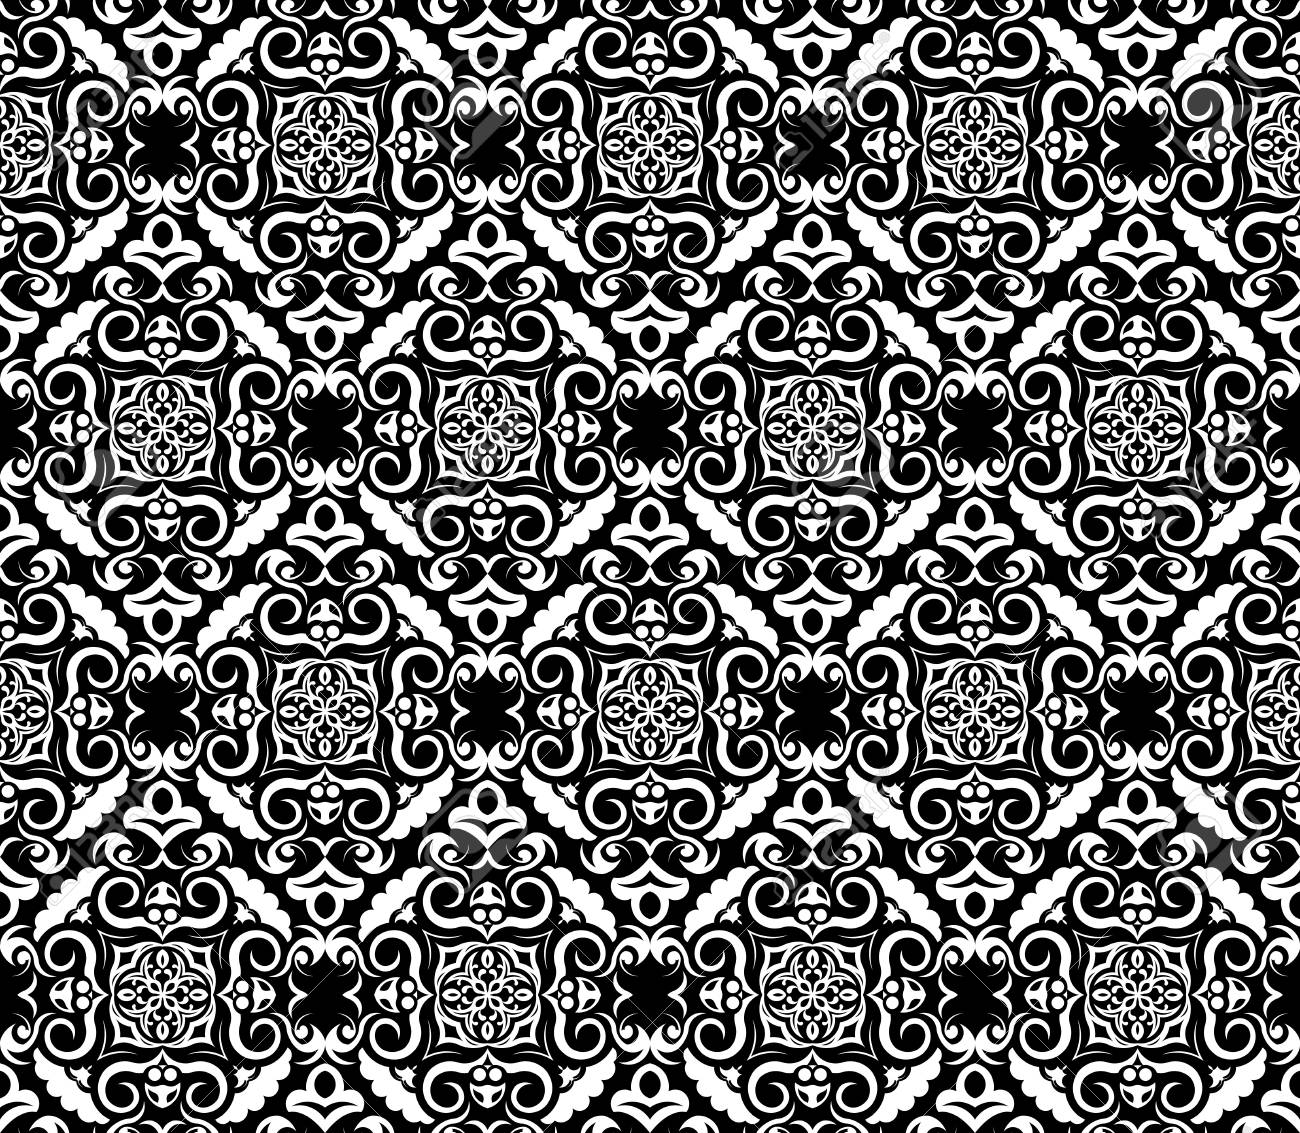 Abstract Black And White Wallpaper Seamless Pattern